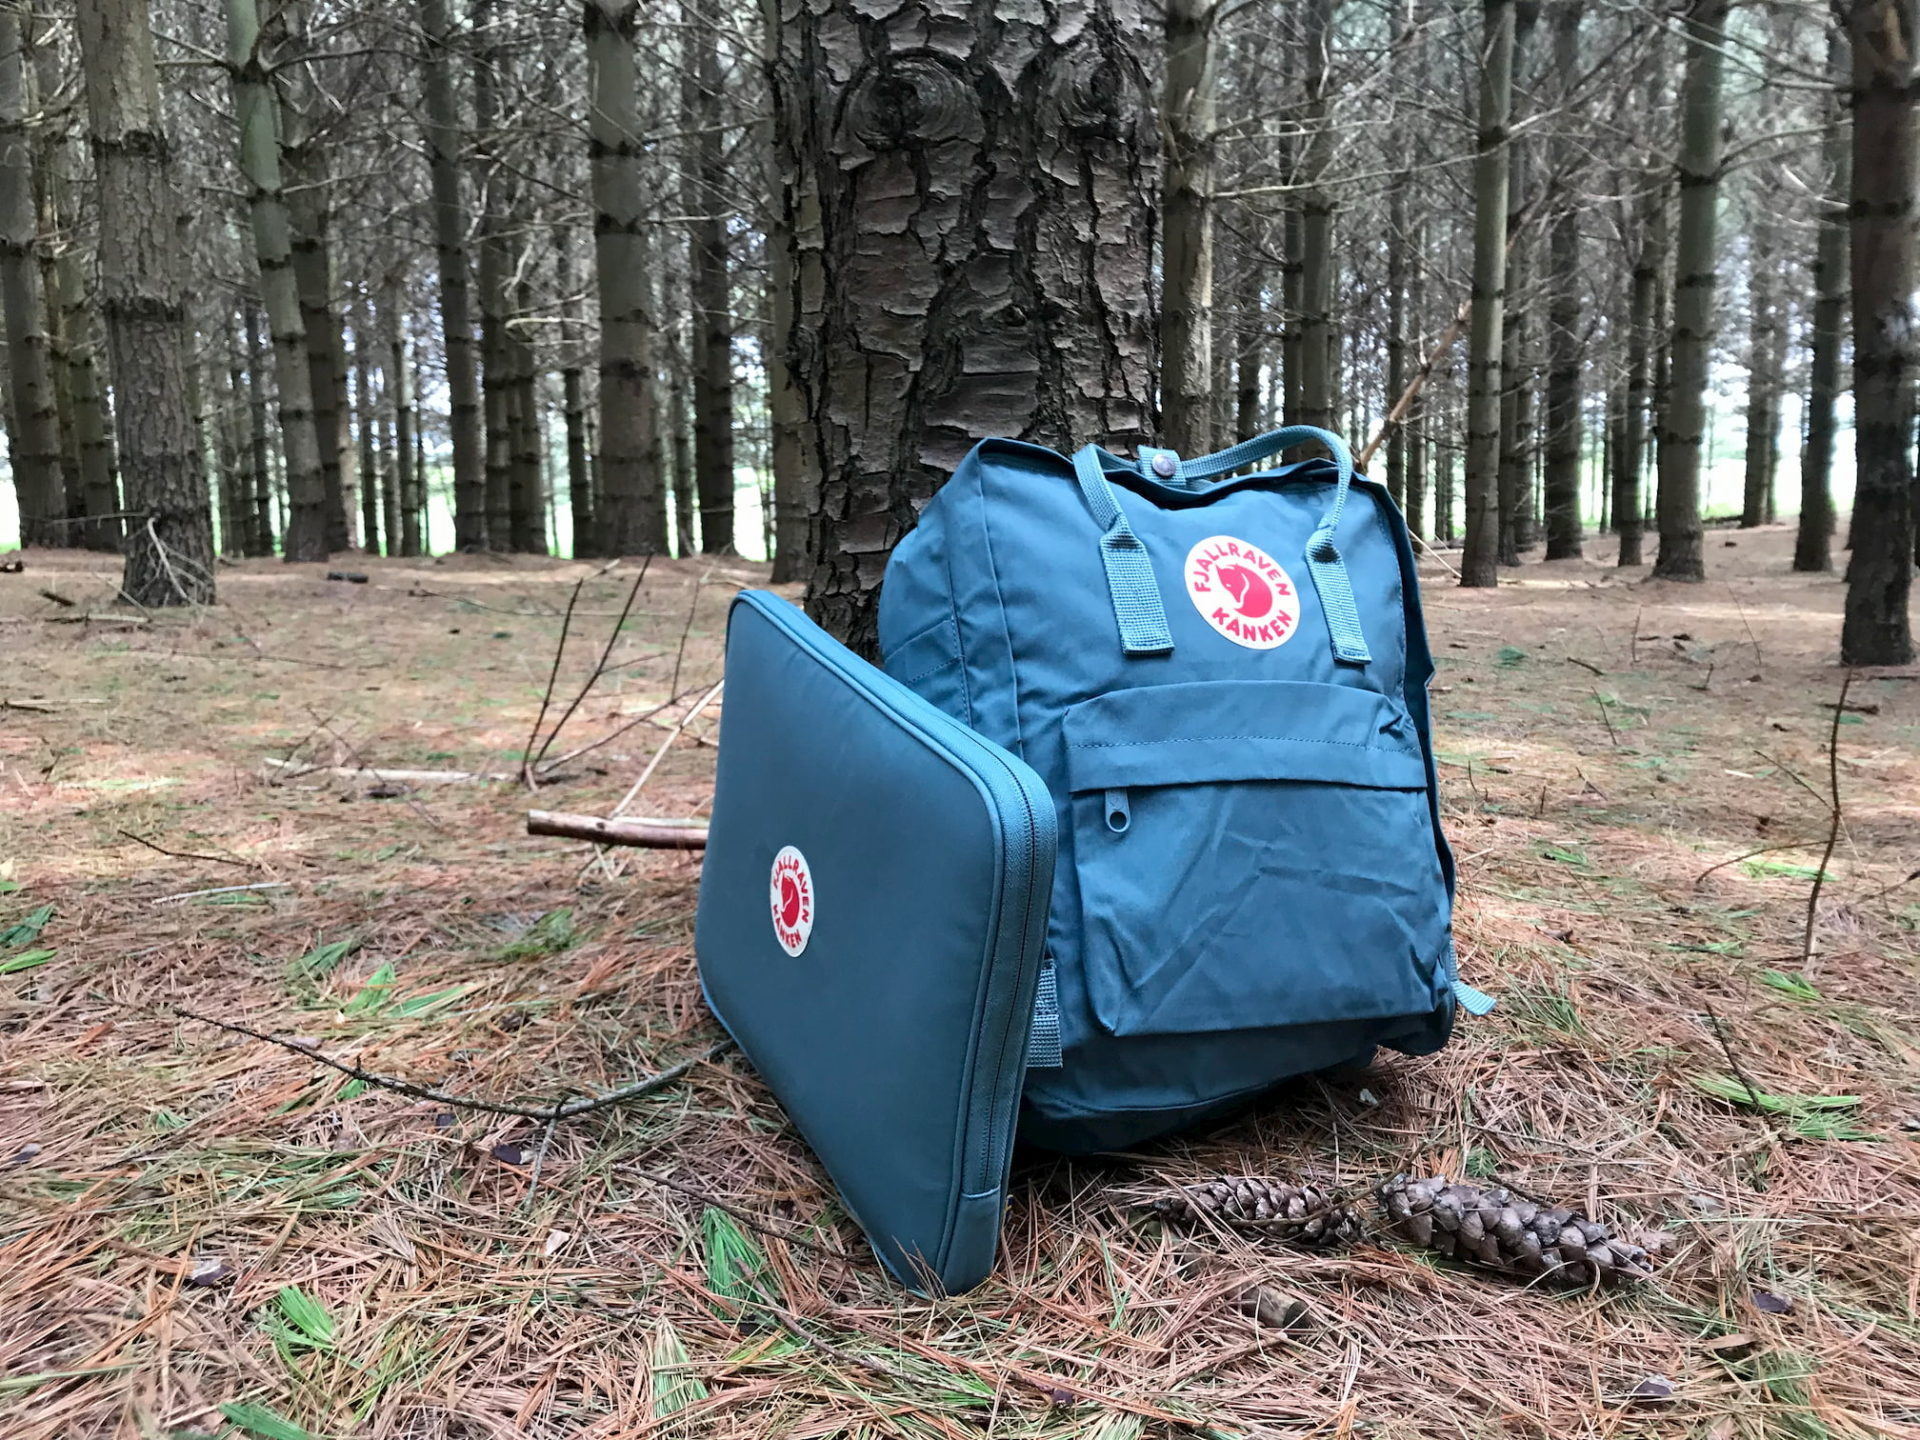 Fjallraven Kanken backpack reviewed by Mountain Life Media